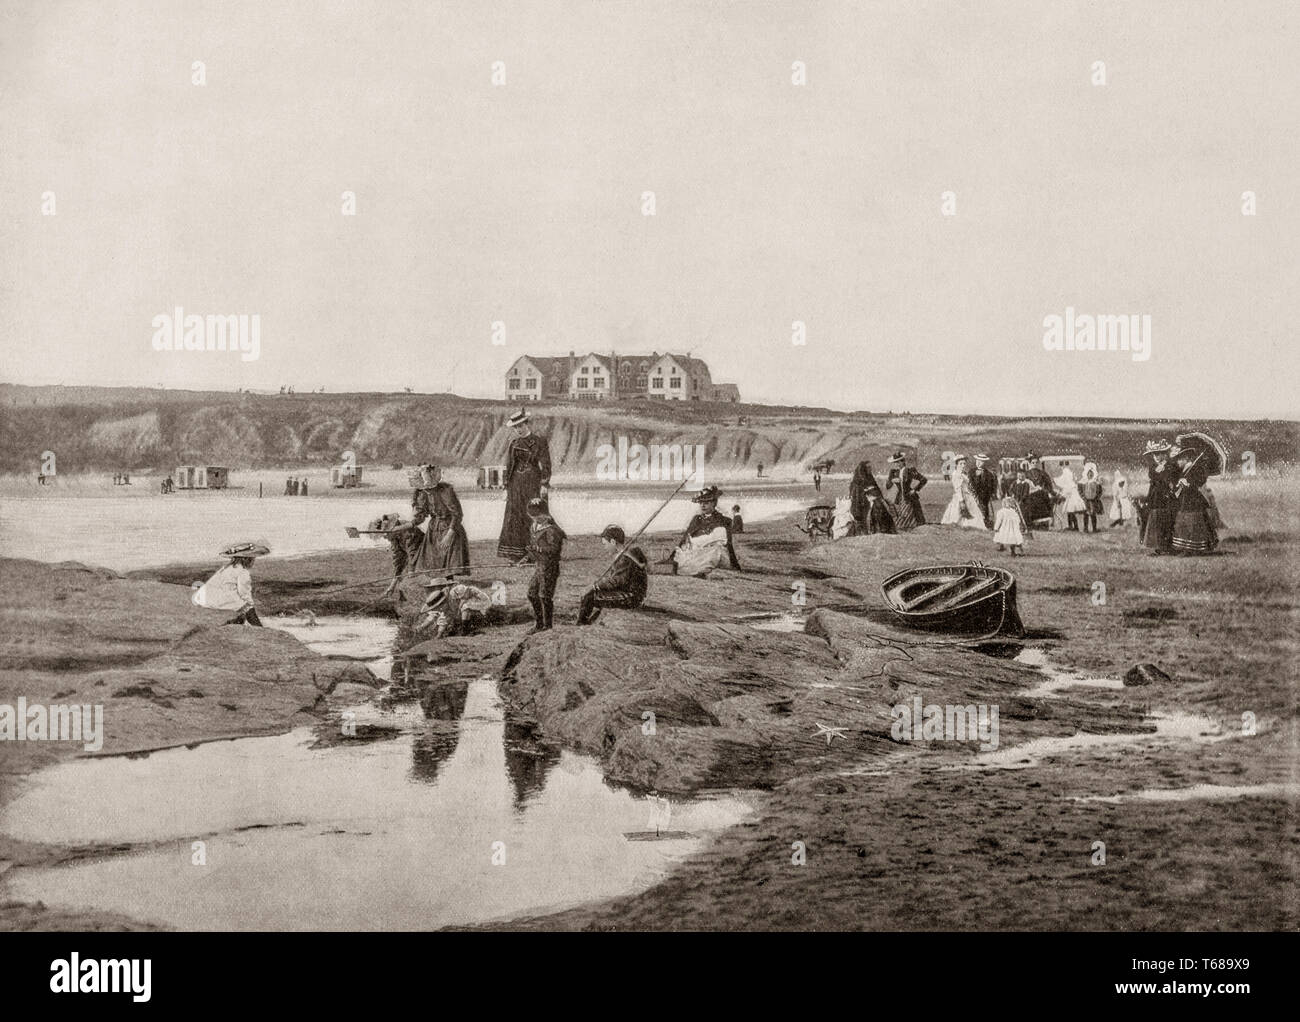 A 19th Century scene of Victorian folk on East Strand in front of the Great Northern Hotel in Bundoran, a town in County Donegal, Ireland. The town is a popular seaside resort, and tourism has been at the heart of the local economy since 1777. - Stock Image